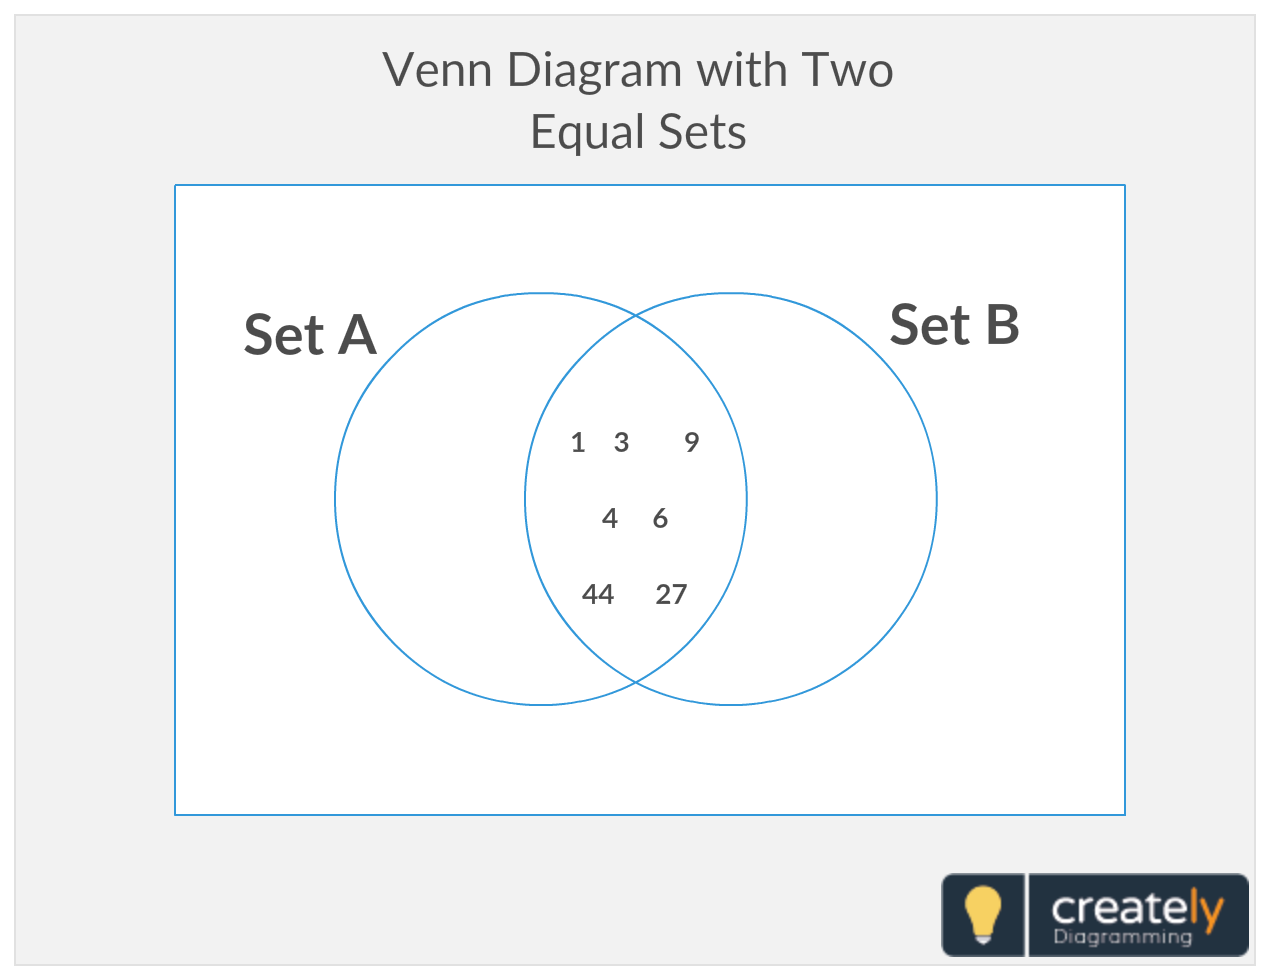 hight resolution of venn diagram with two equal sets a venn diagram is a diagram that shows all possible logical relations between a finite collection of different sets